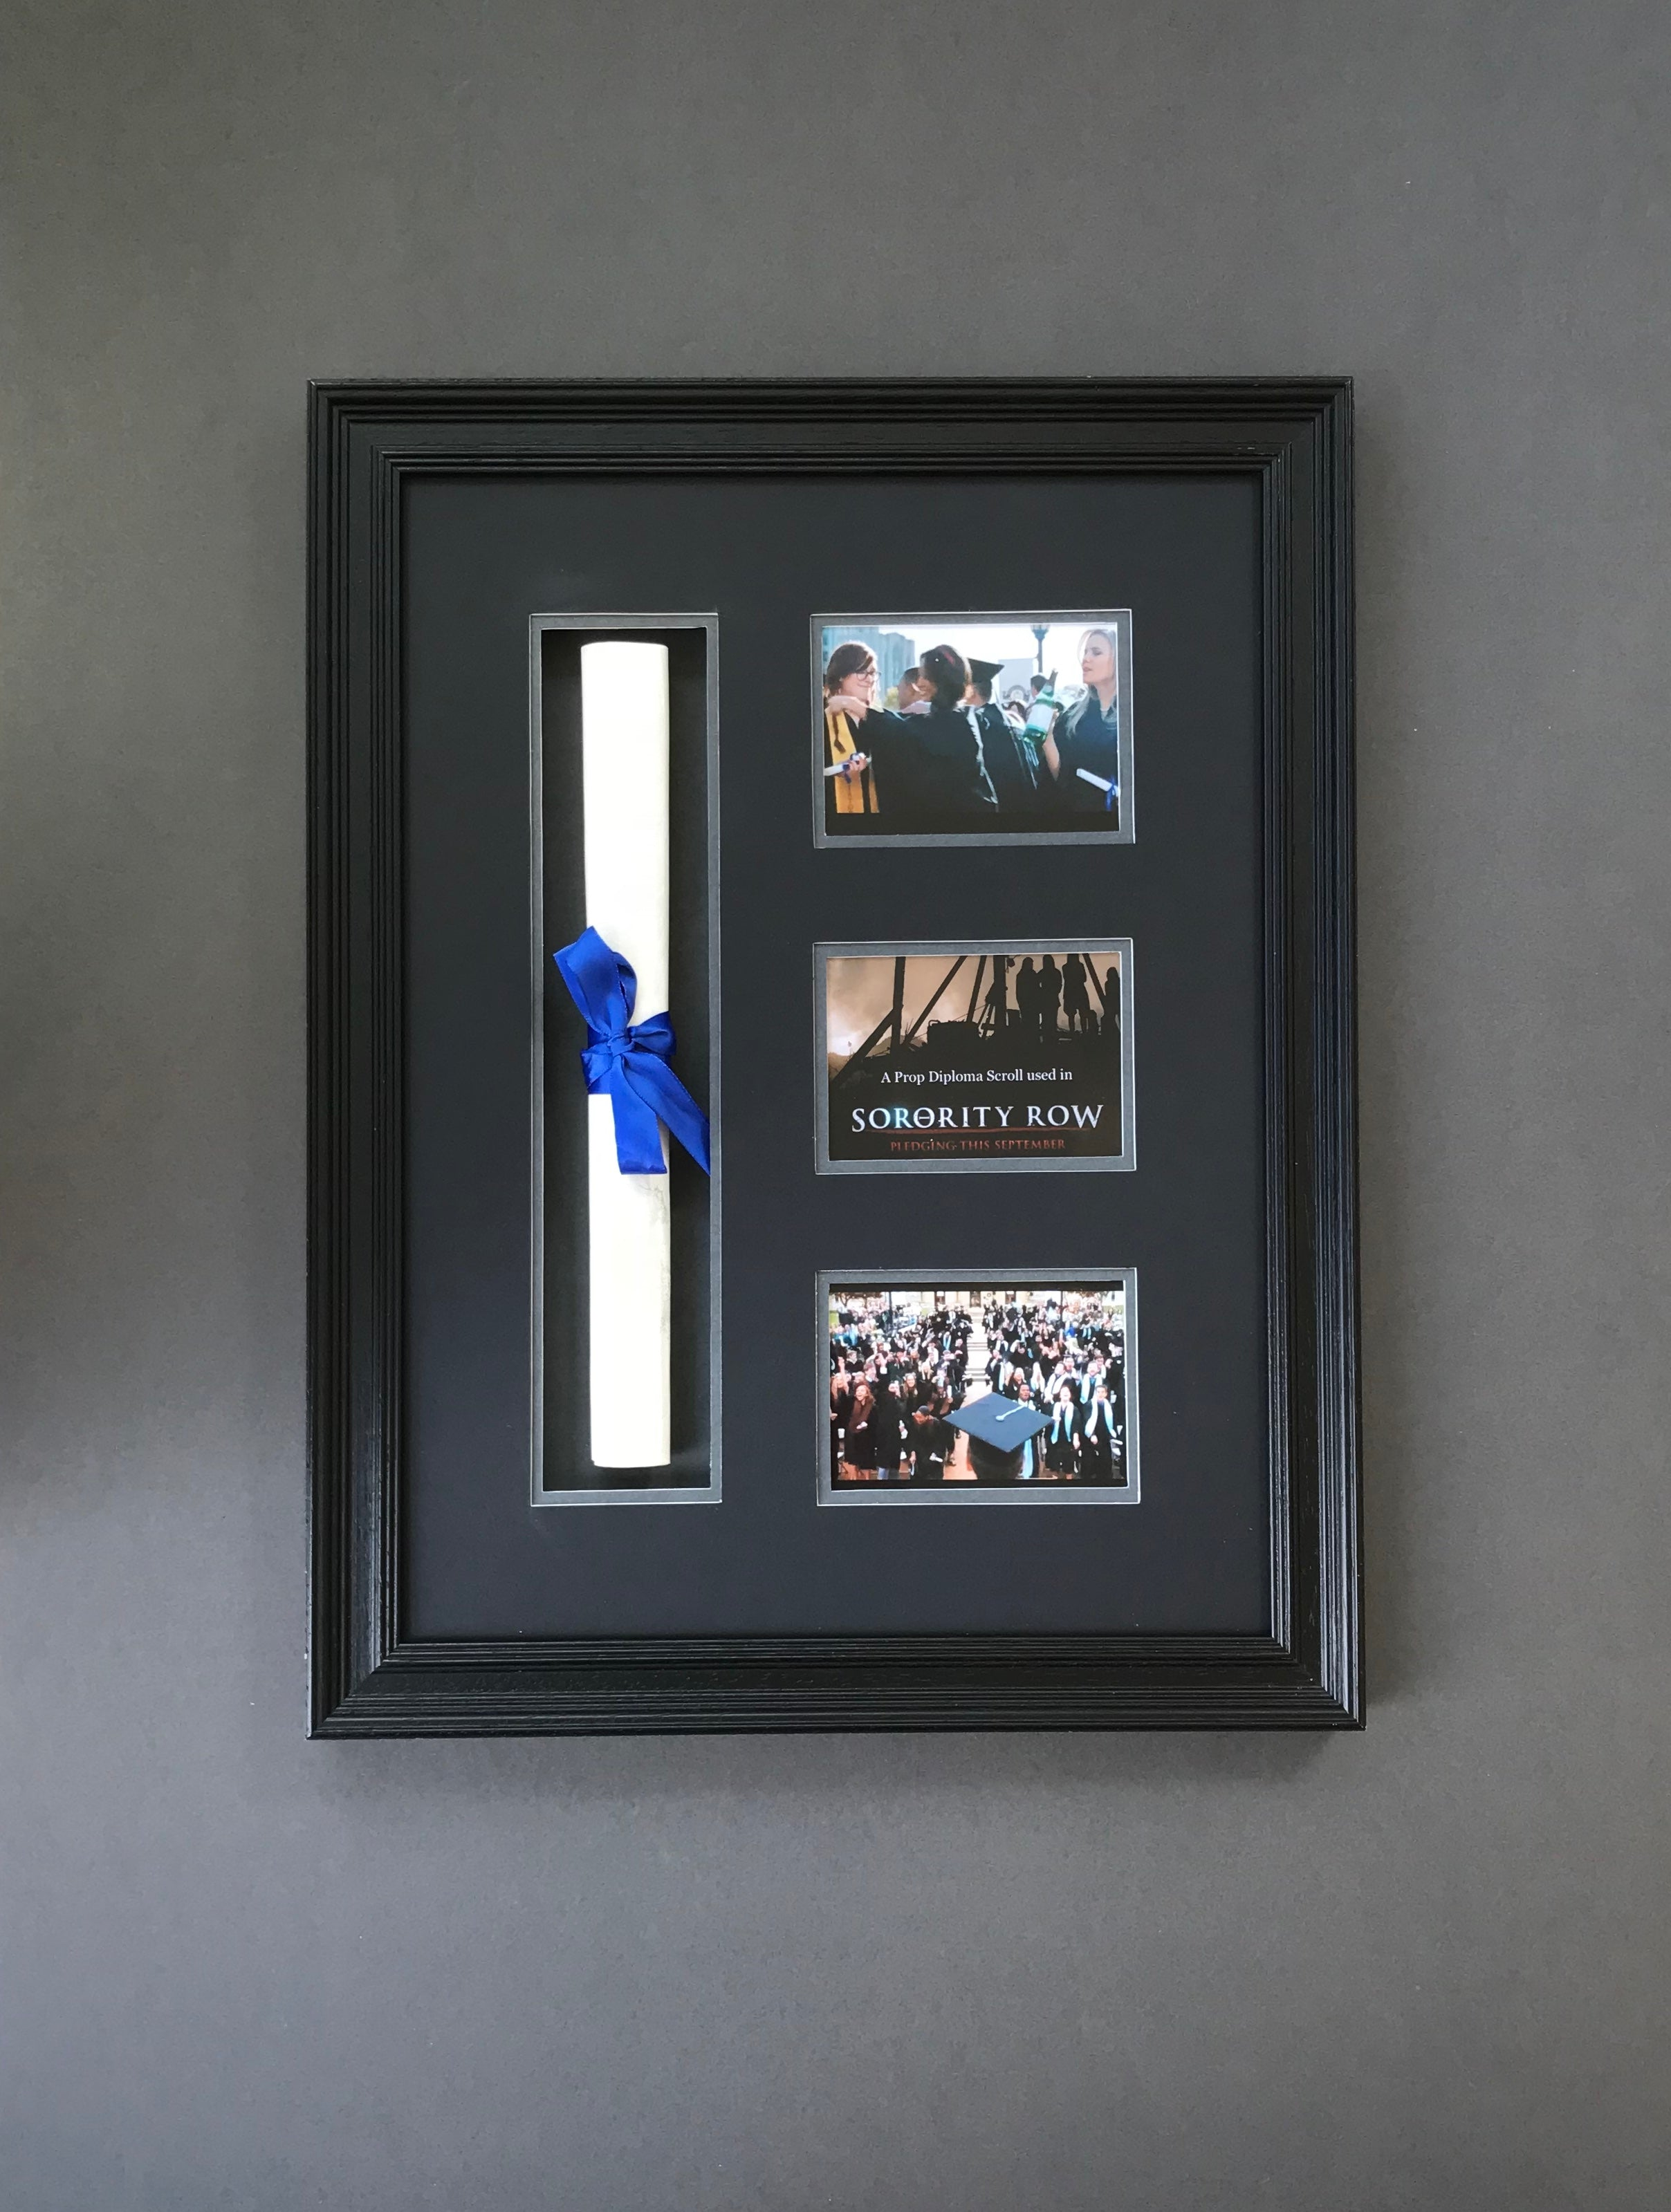 Sorority Row (2009) - A Prop Diploma Scroll